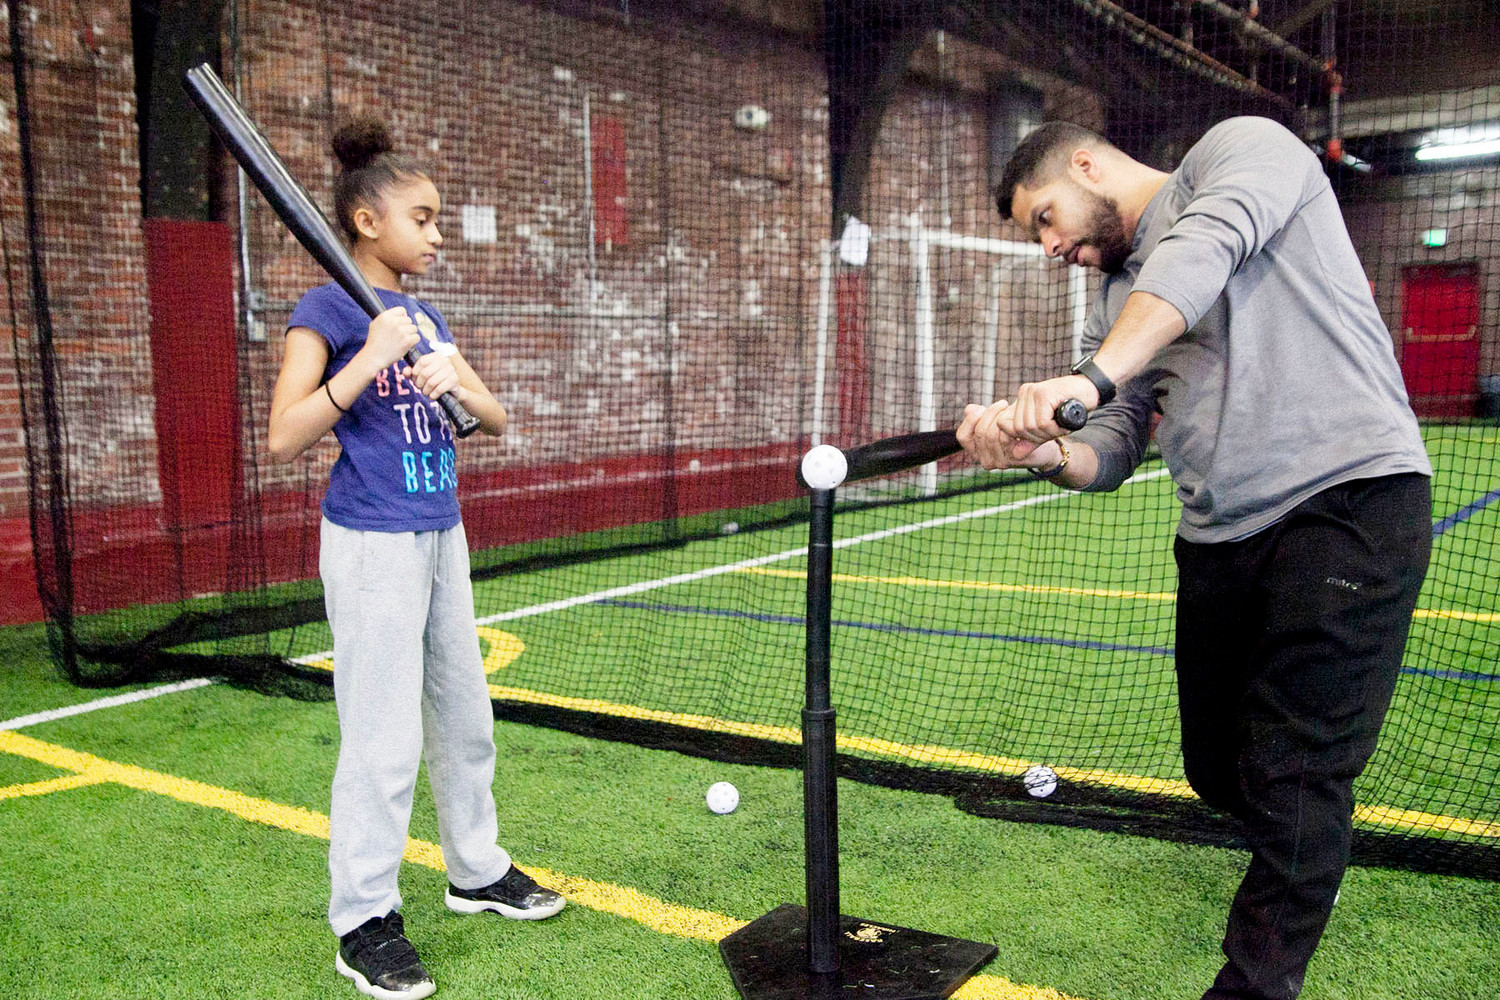 Steve Marrero, a coach with Newburgh Baseball Instruction, gives Jaslene Cheatham hitting tips.